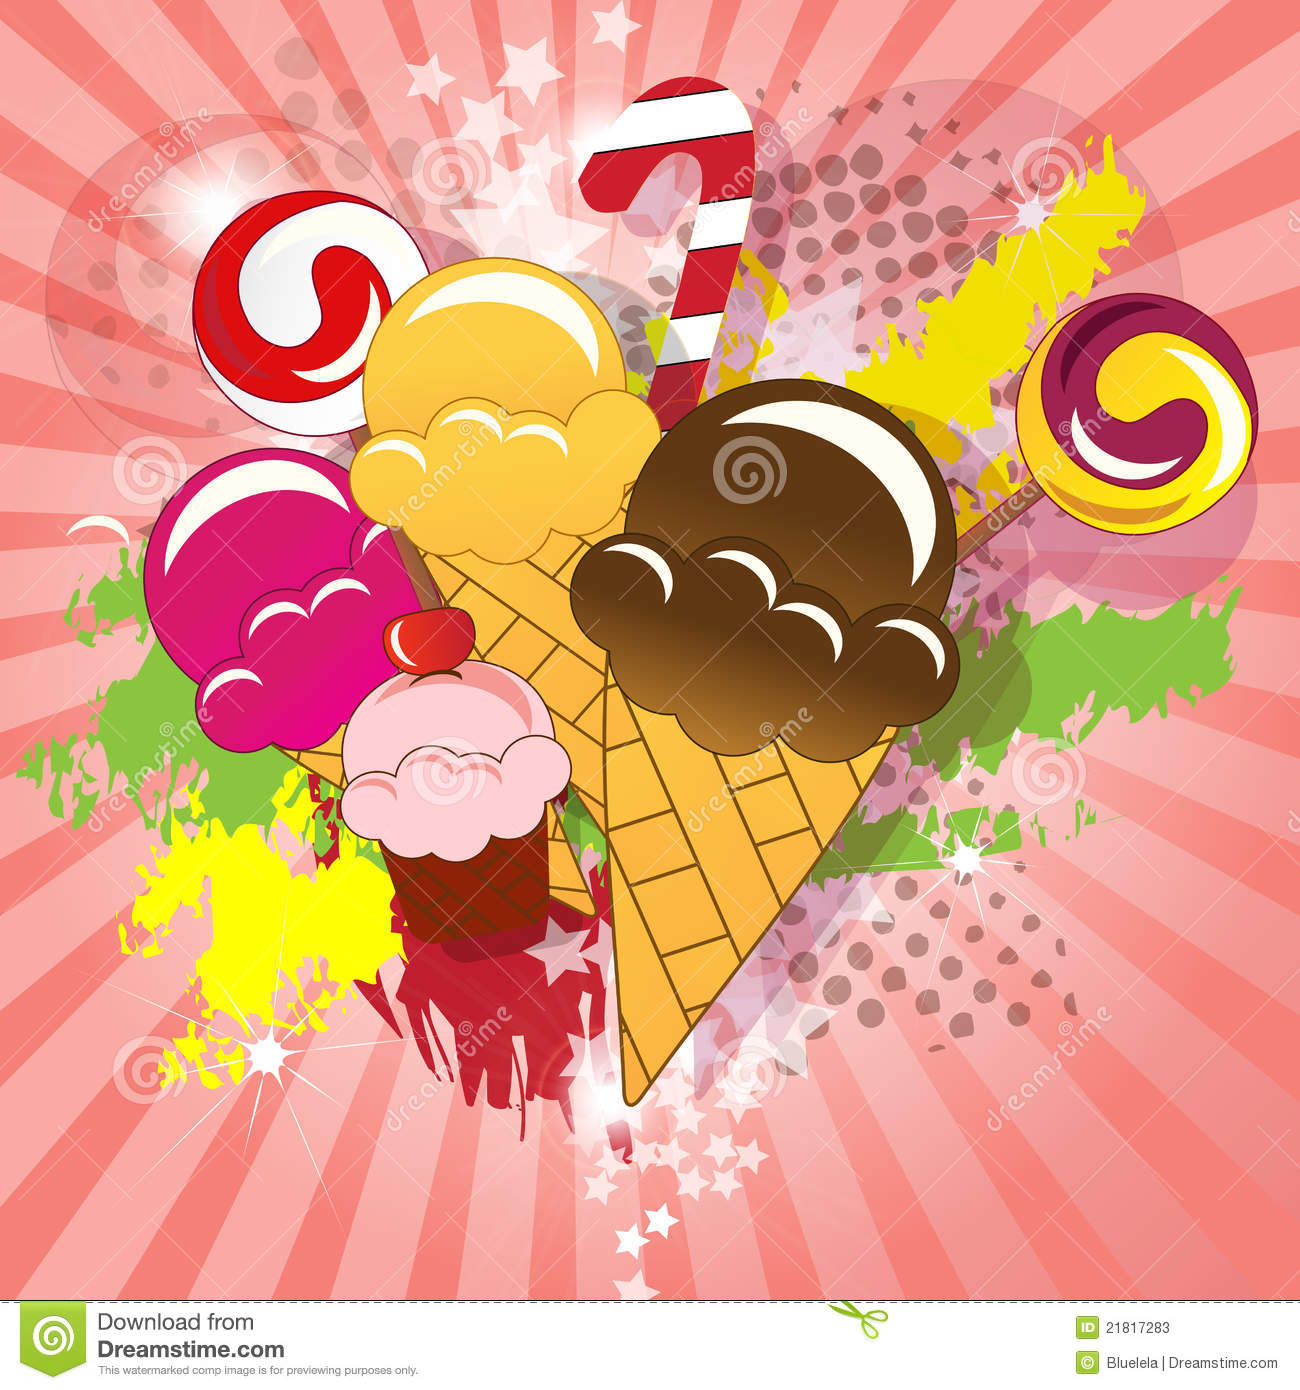 Ice Cream Background Sparking Shiny Decoration Free Vector: Collection Of Candy, Ice Cream, Cup Cakes And Loll Stock